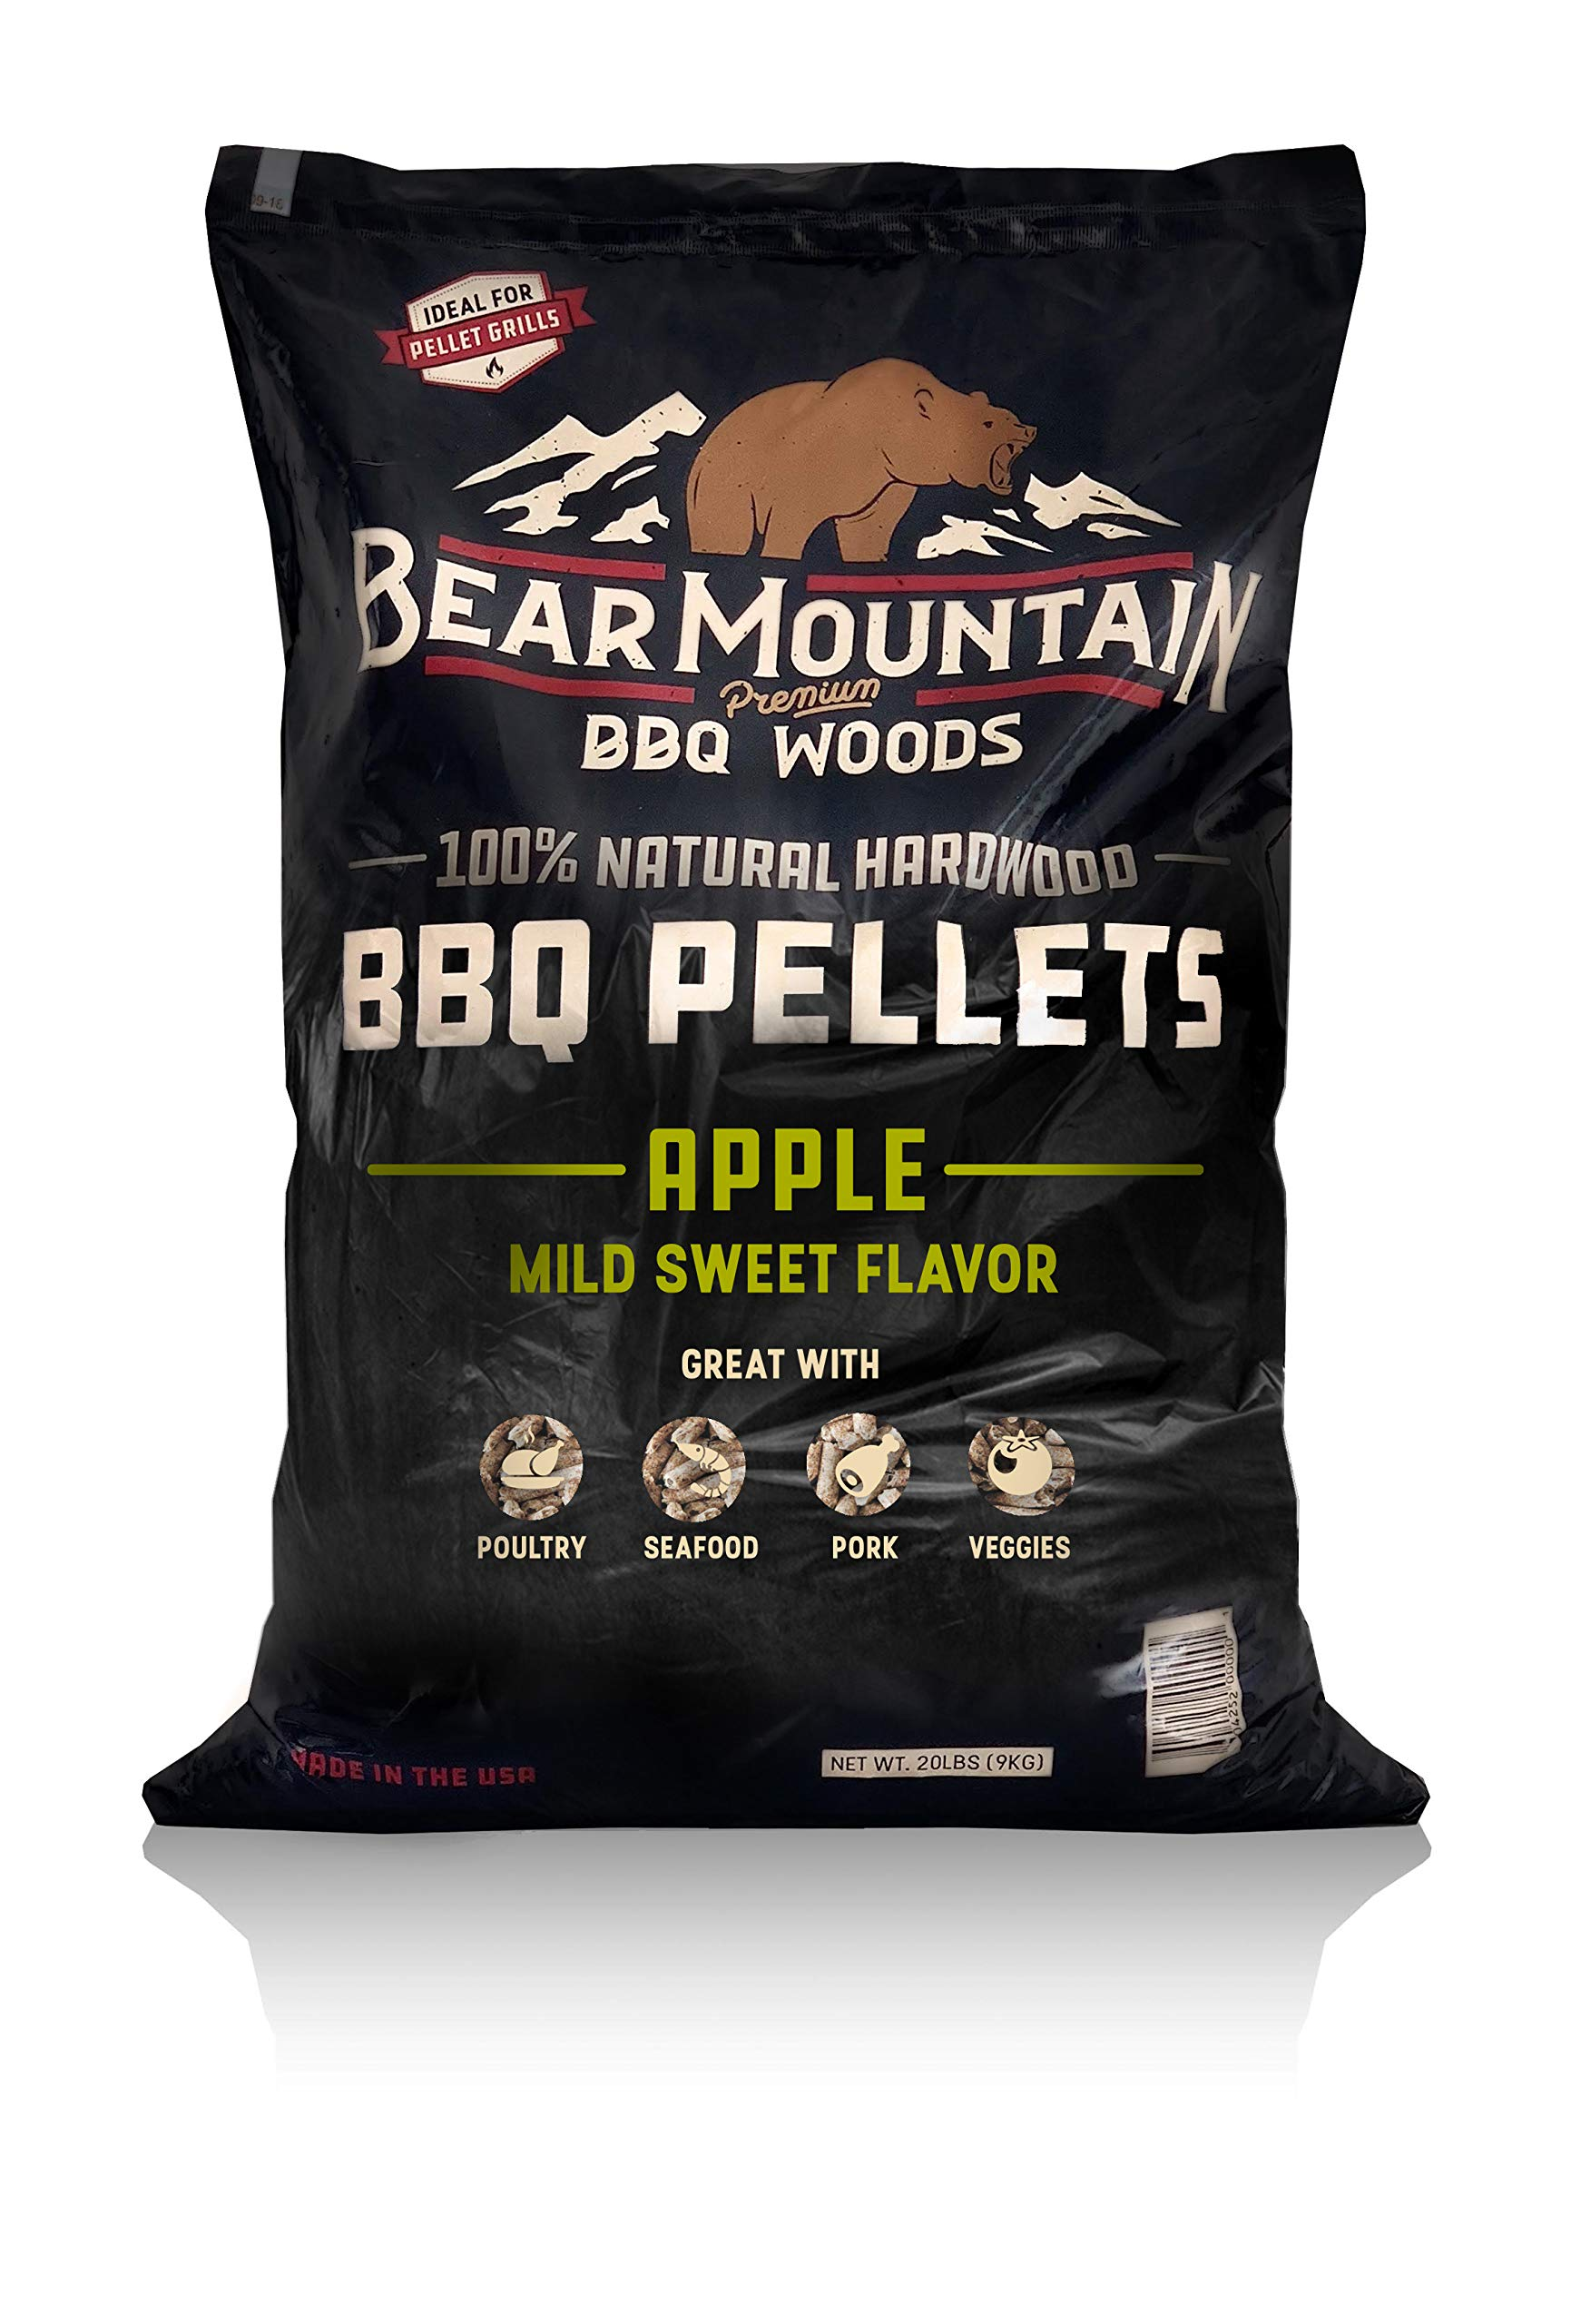 Bear Mountain BBQ 100% All-Natural Hardwood Pellets - Apple Wood (20 lb. Bag) Perfect for Pellet Smokers, or Any Outdoor Grill | Mild Sweet, Smoky Wood-Fired Flavor by Bear Mountain BBQ